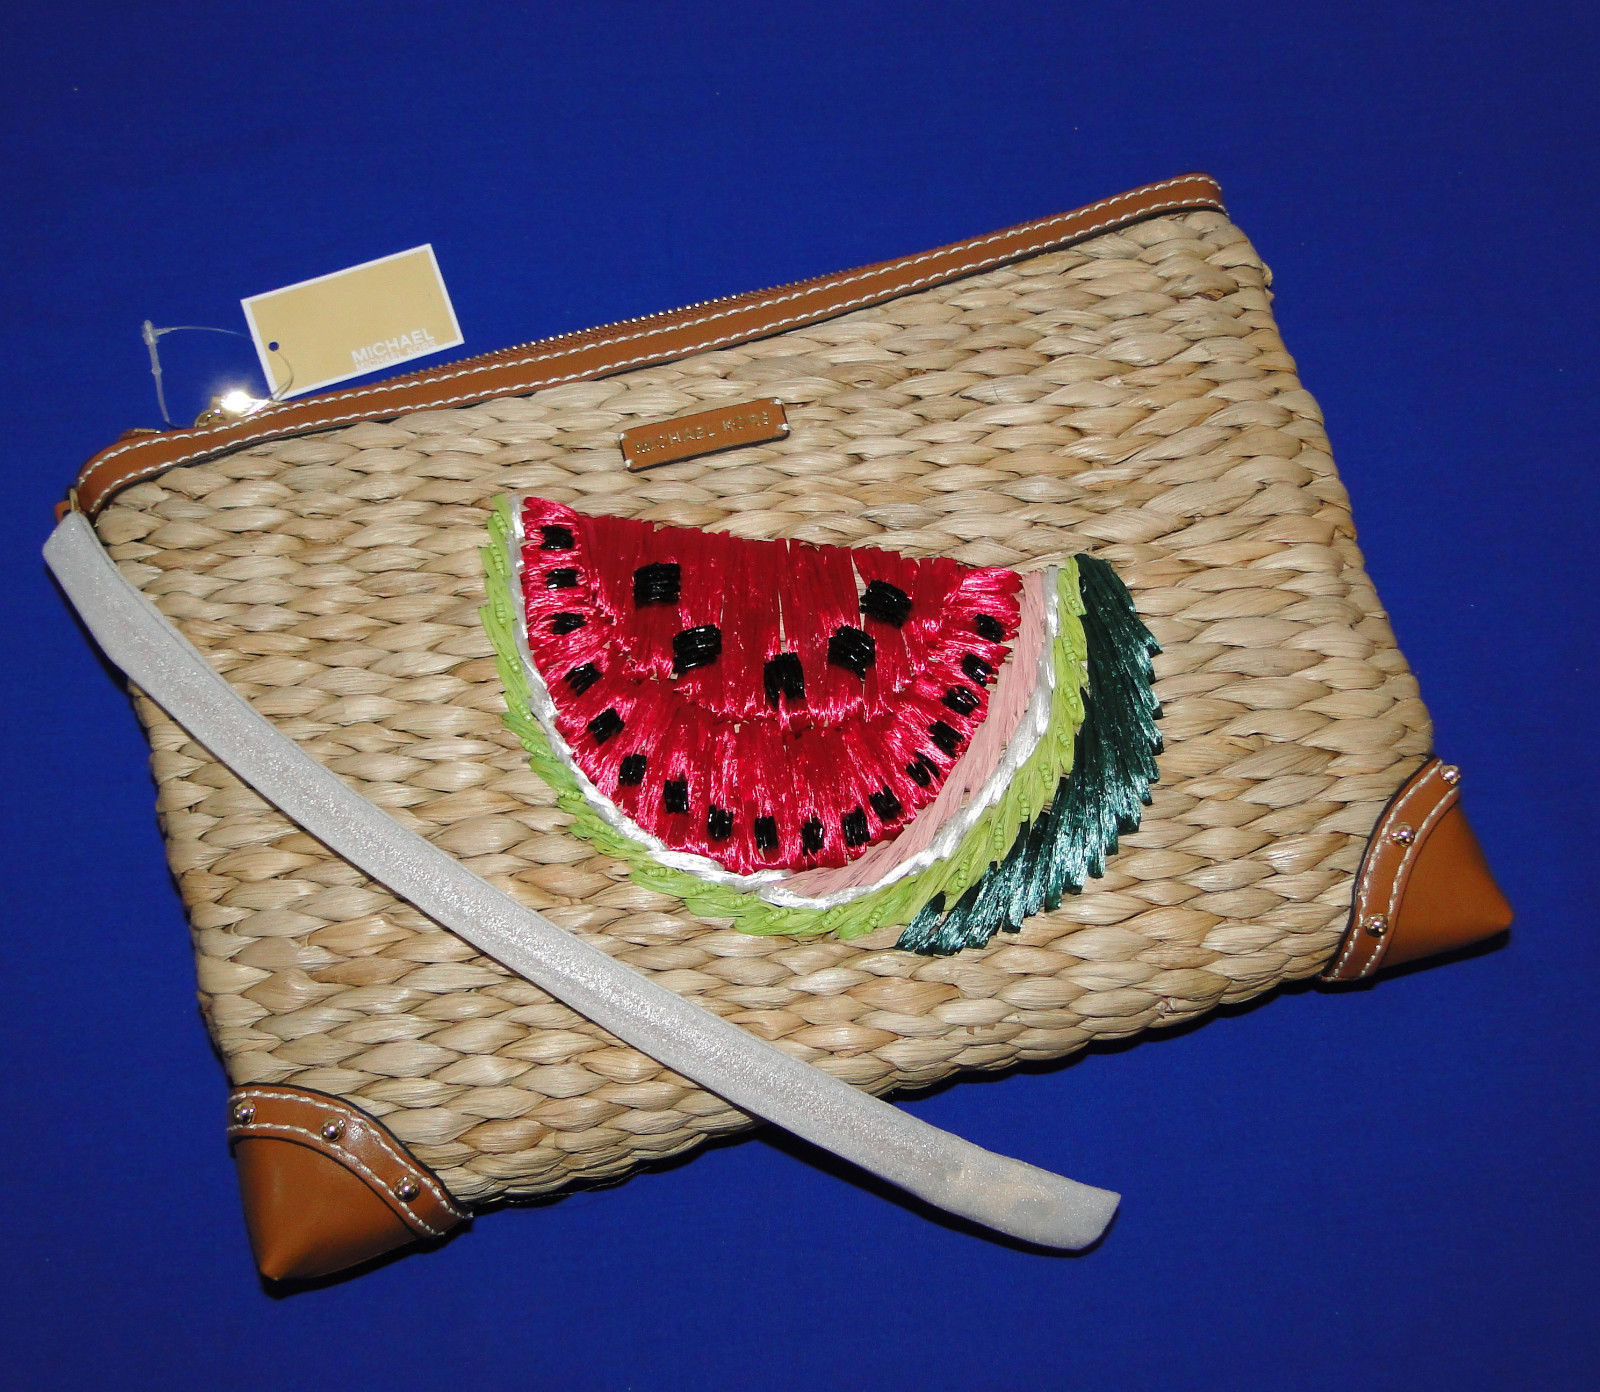 Michael Kors Malibu Watermelon Woven Straw XL Zip Clutch